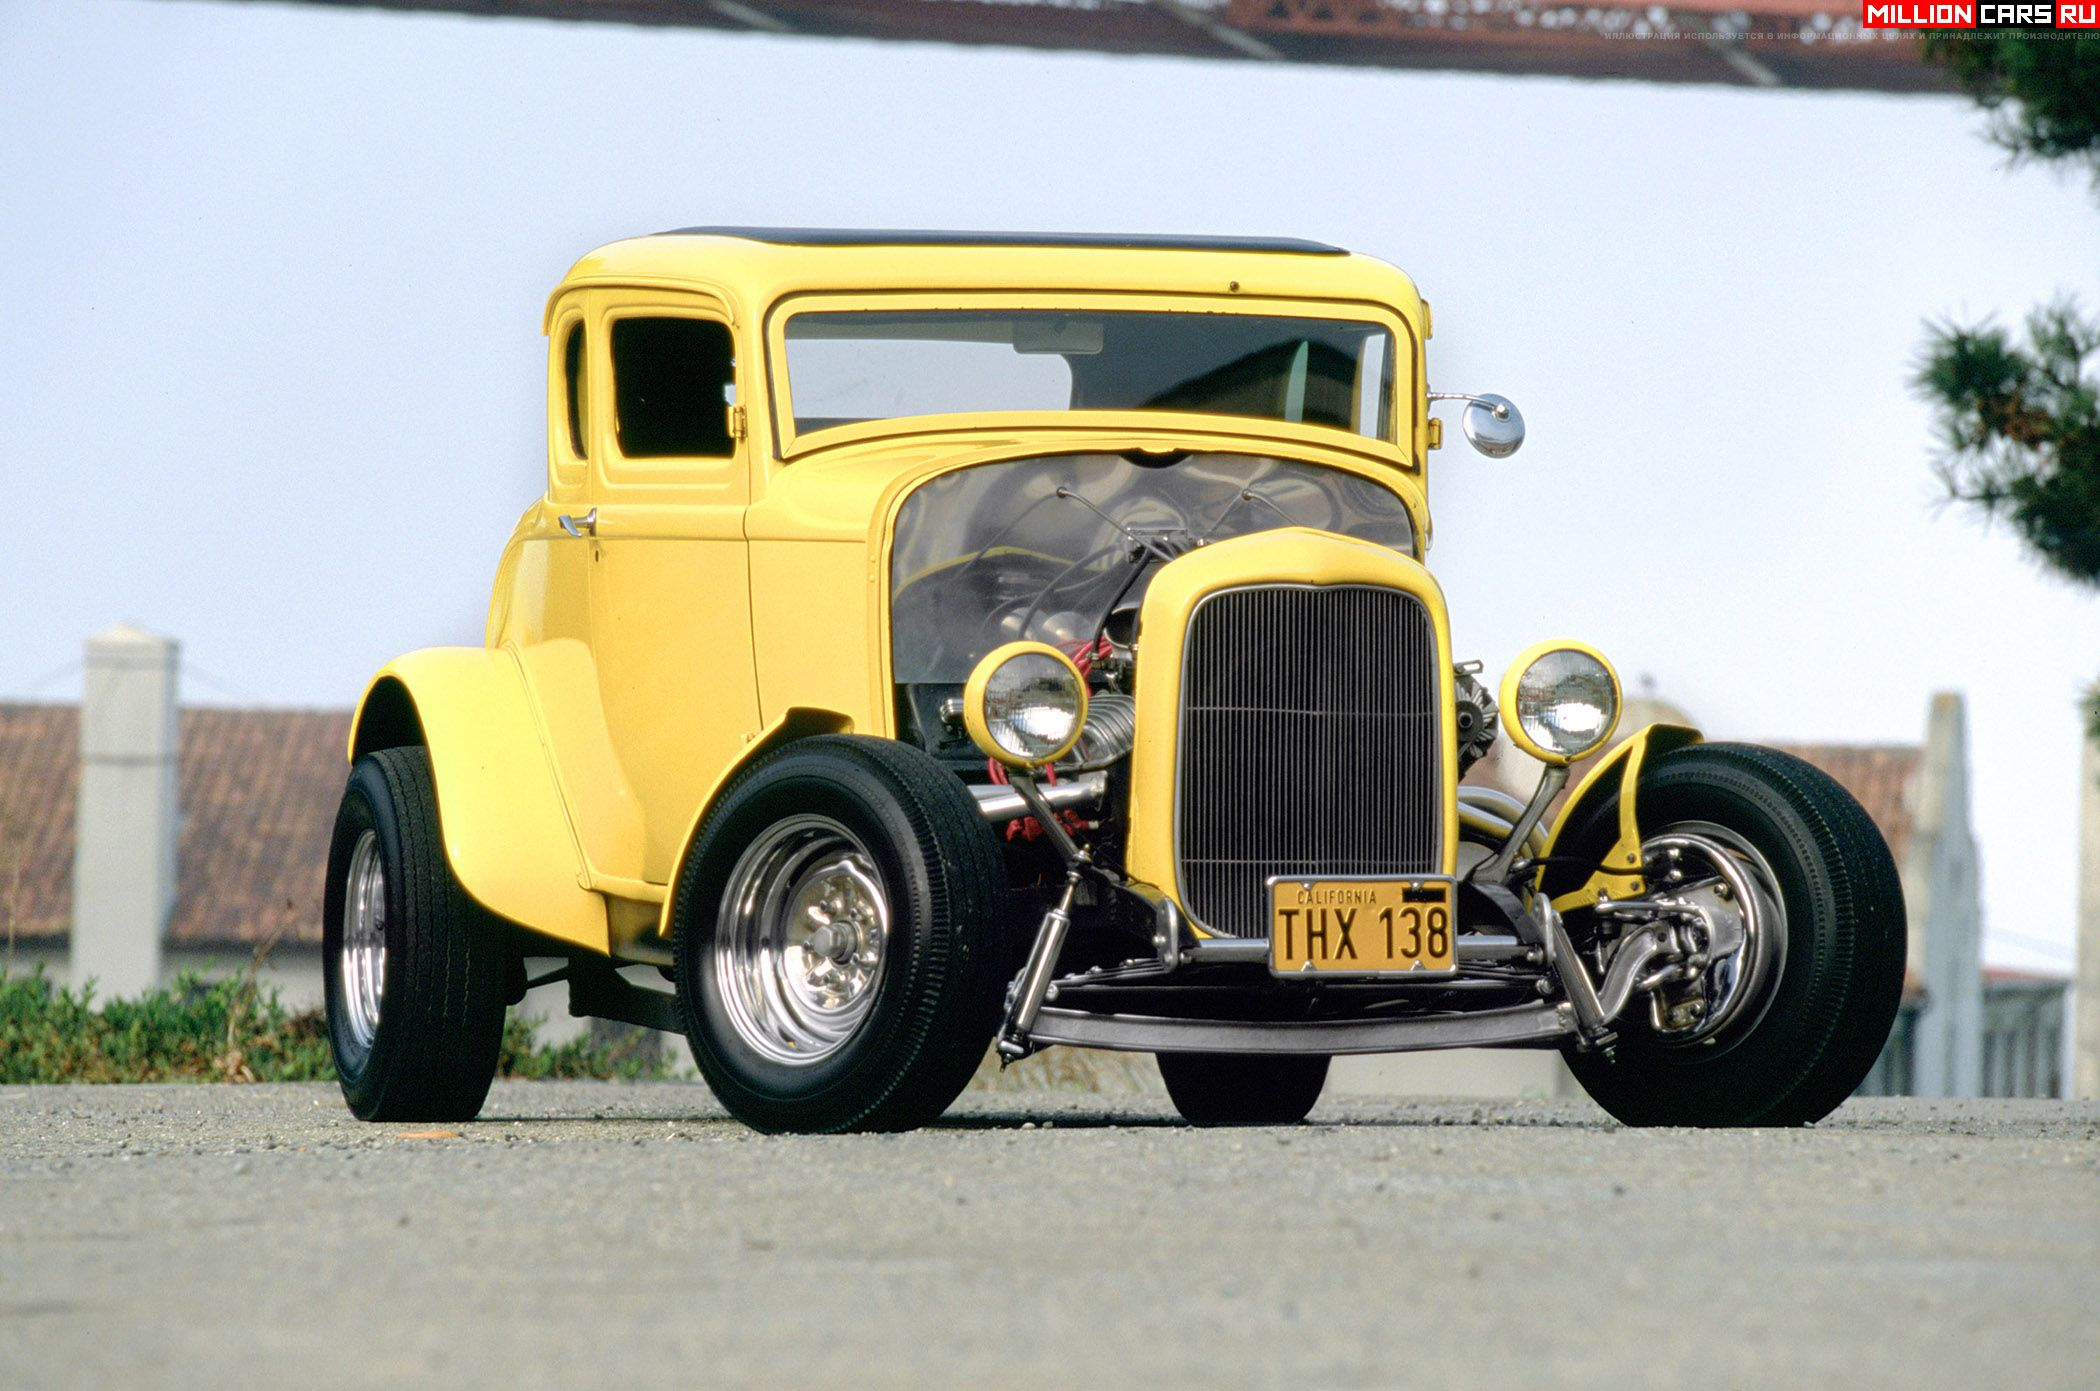 5. American Graffiti -- 1932 Ford Coupe